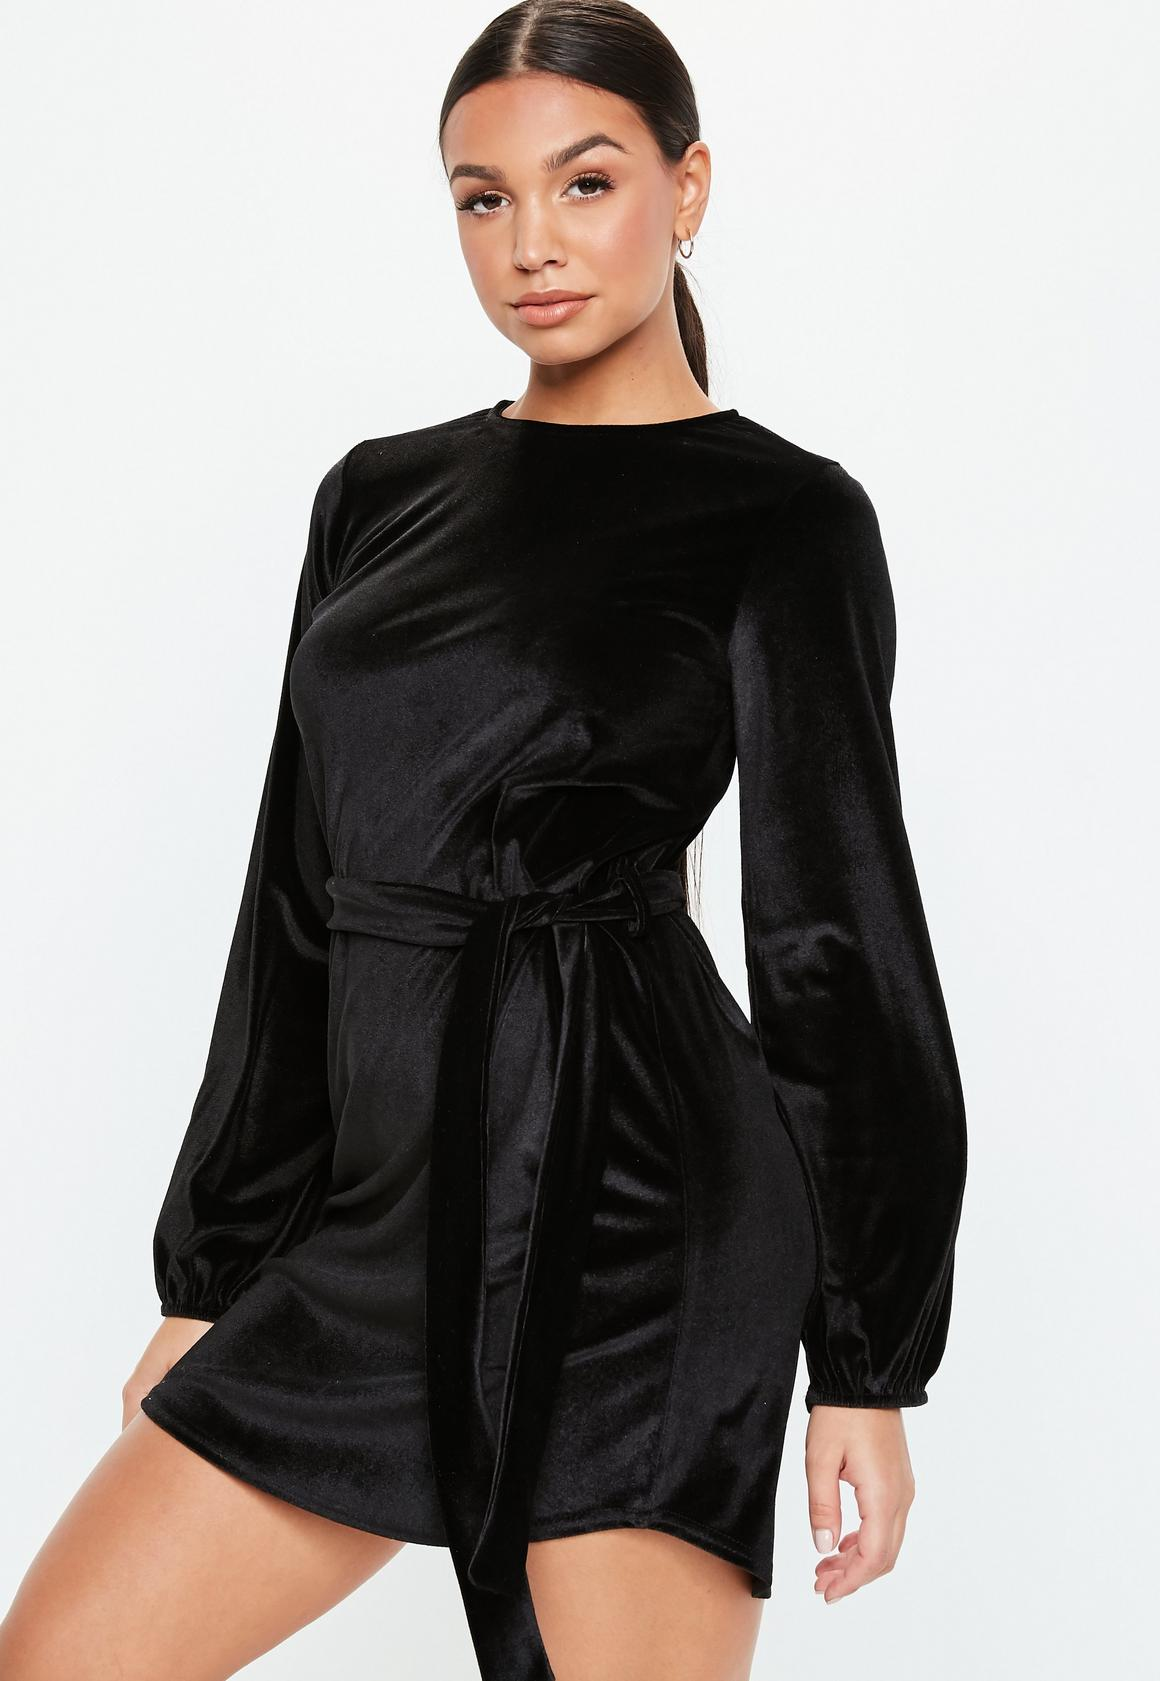 $32 (get 50% off with code useme)